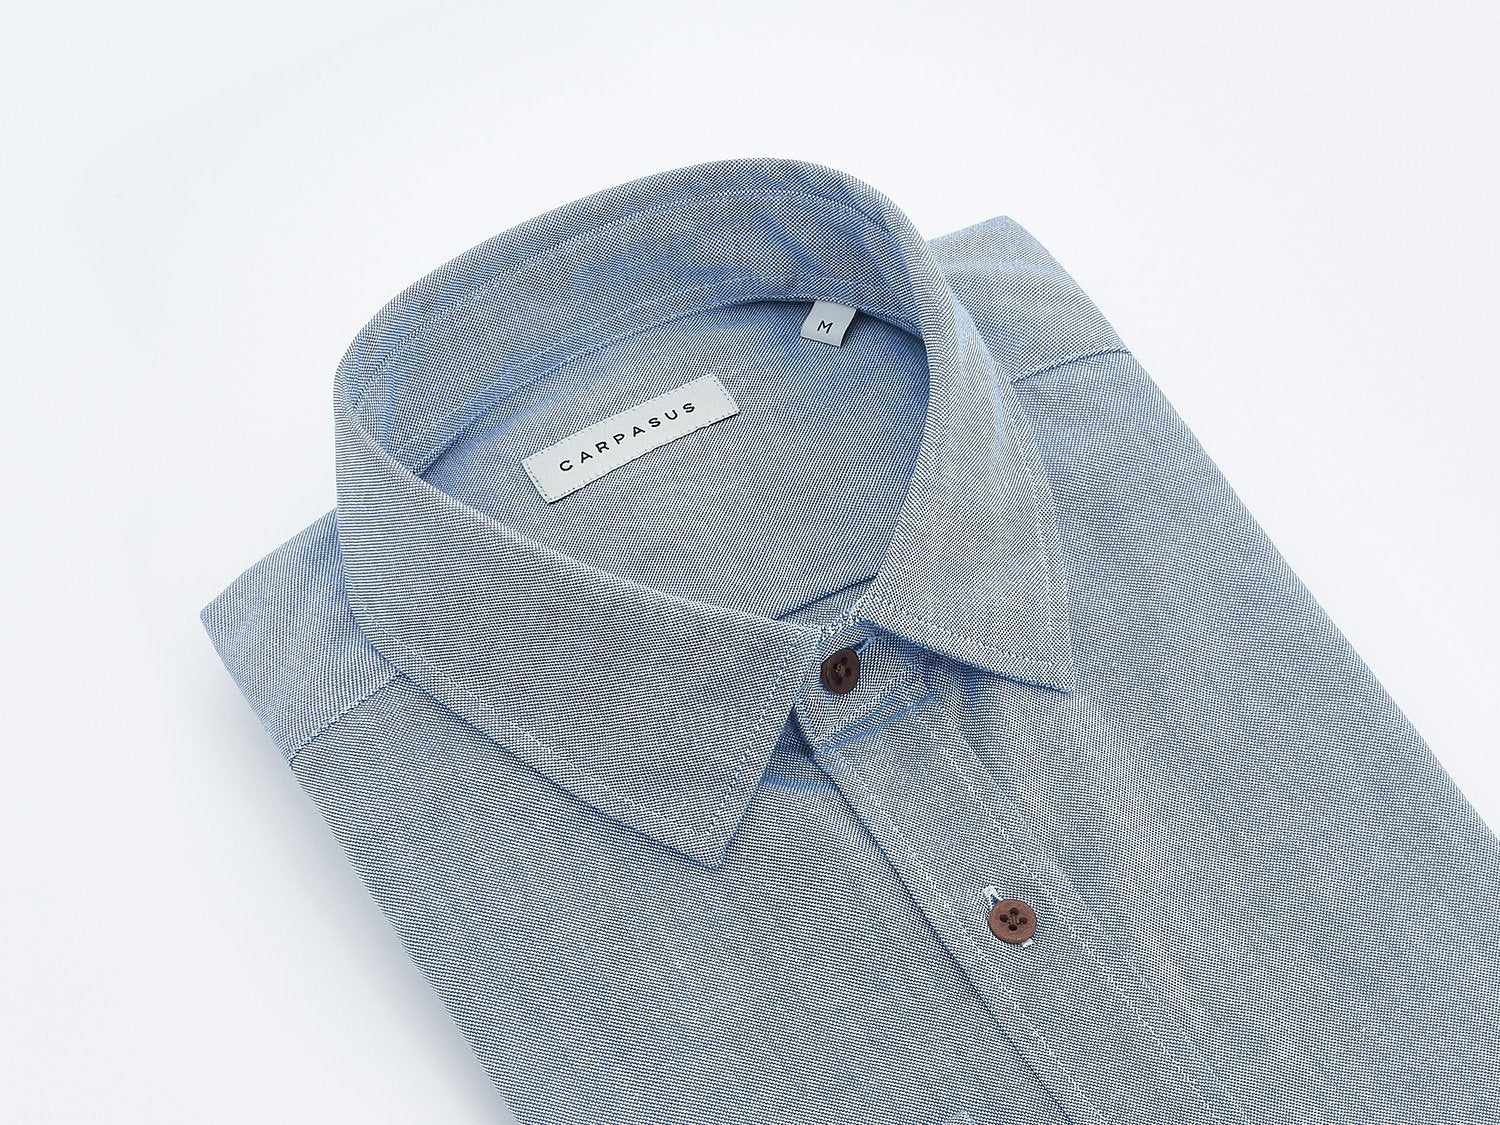 carpasus sustainable organic cotton shirt rivero blue. Nachhaltiges Carpasus Hemd Rivero aus Bio Baumwolle in Blau